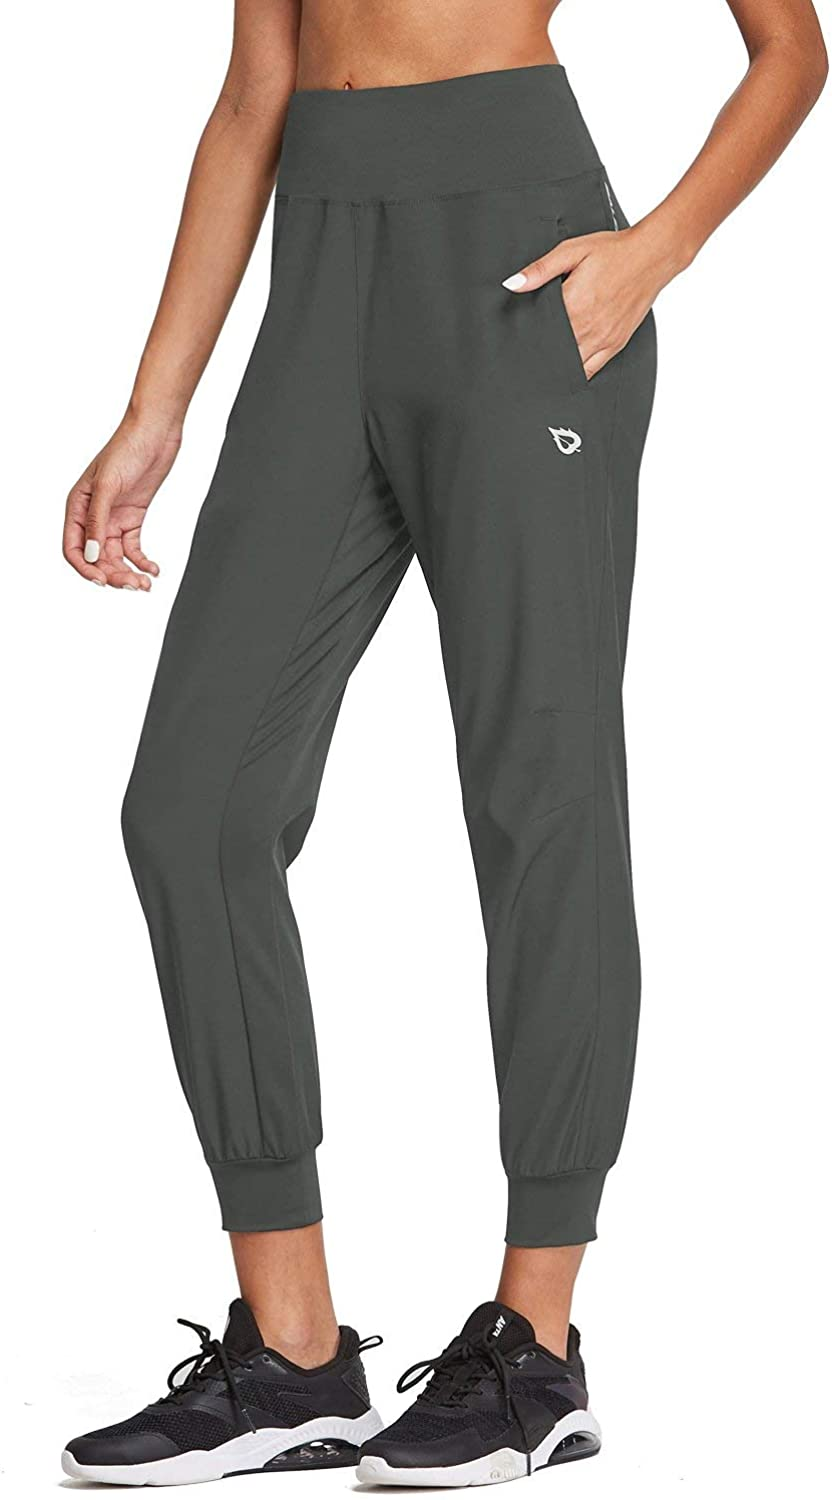 """BALEAF Women's 26"""" High Wasited Joggers Lightweight Athletic Running Sport Pants Quick Dry: Clothing"""